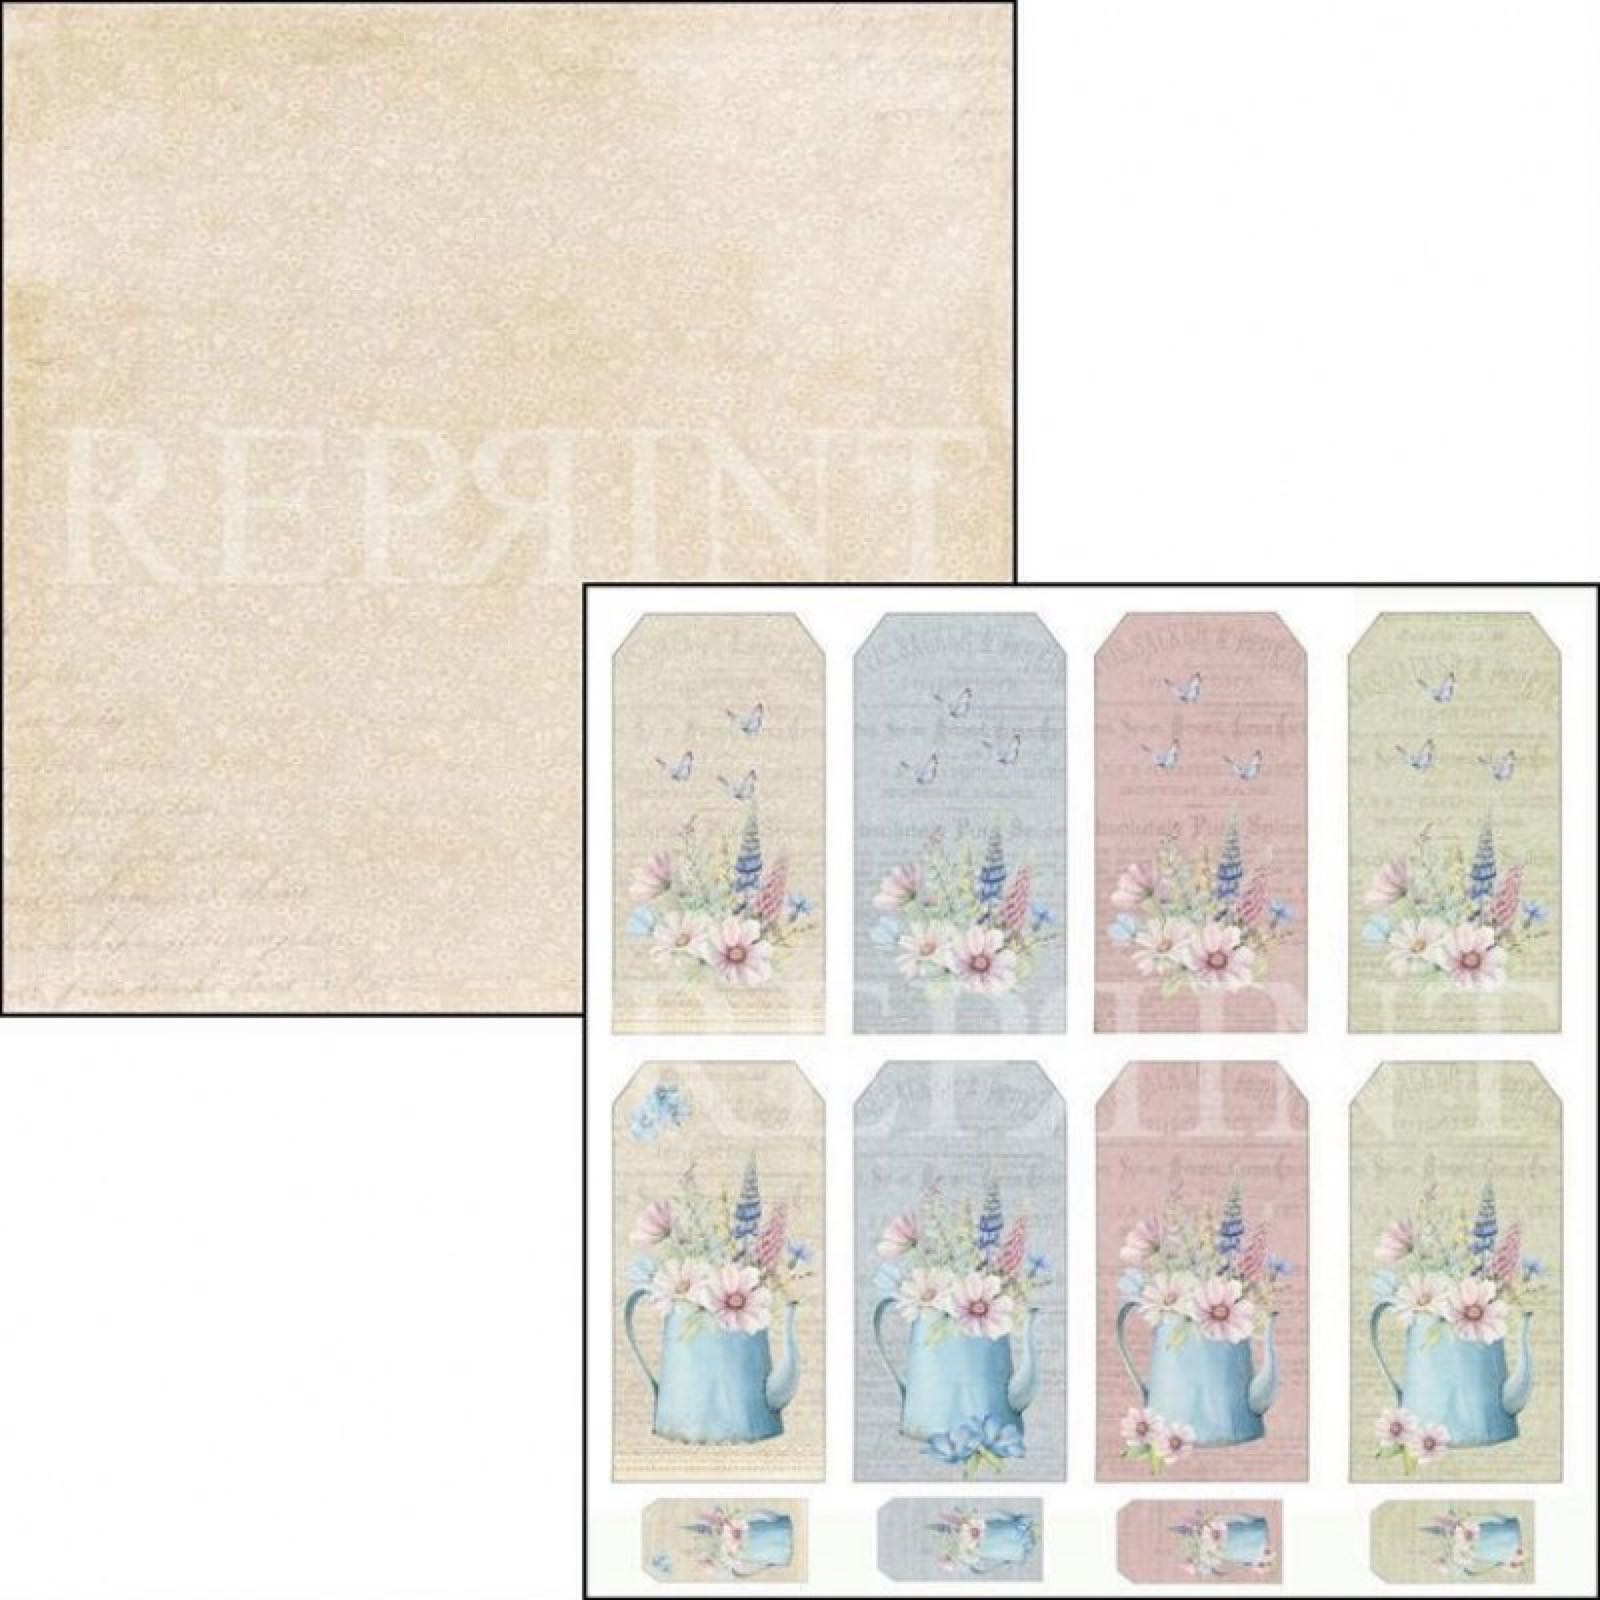 Reprint 12x12, Summervibes collection, tags. rp0358